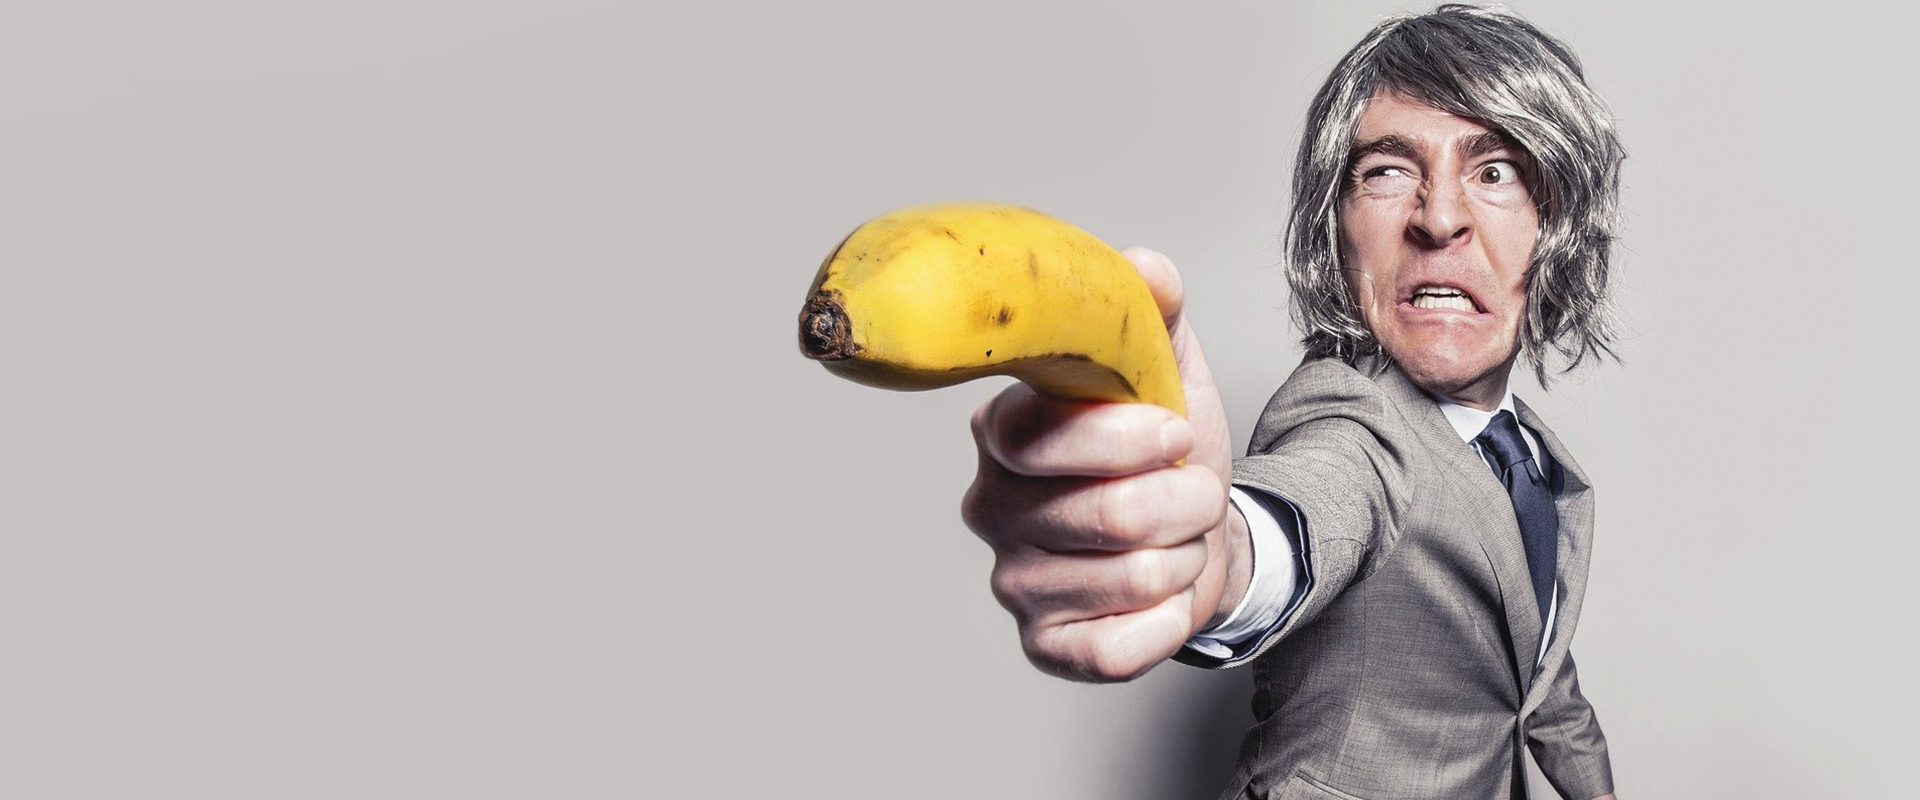 Photo of a man holding a banana like a gun